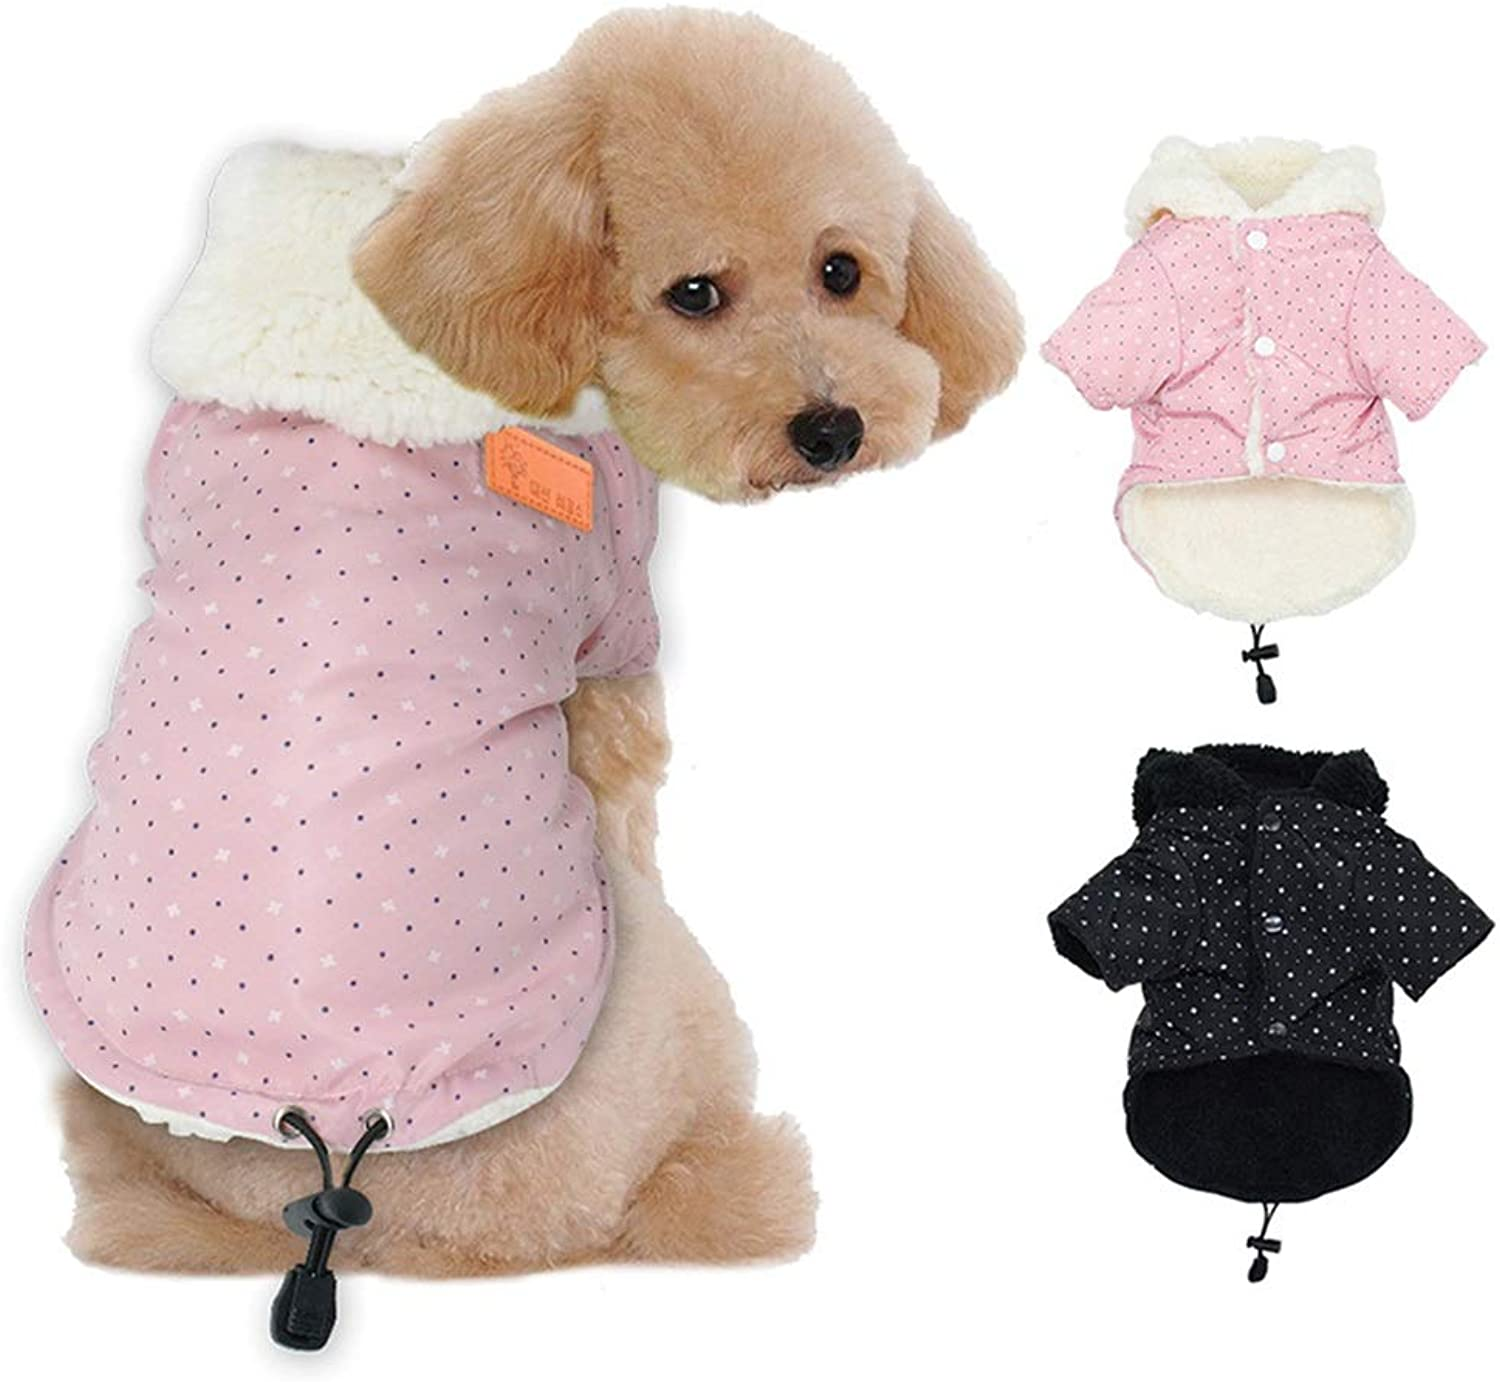 Dog Winter Coats, Dogs Suplement Dog Apparel Cold Weather, Puppy Warm Dog Coat Soft Cloth, Puppy Warm Winter Coats for Cats Small Medium Large Dogs